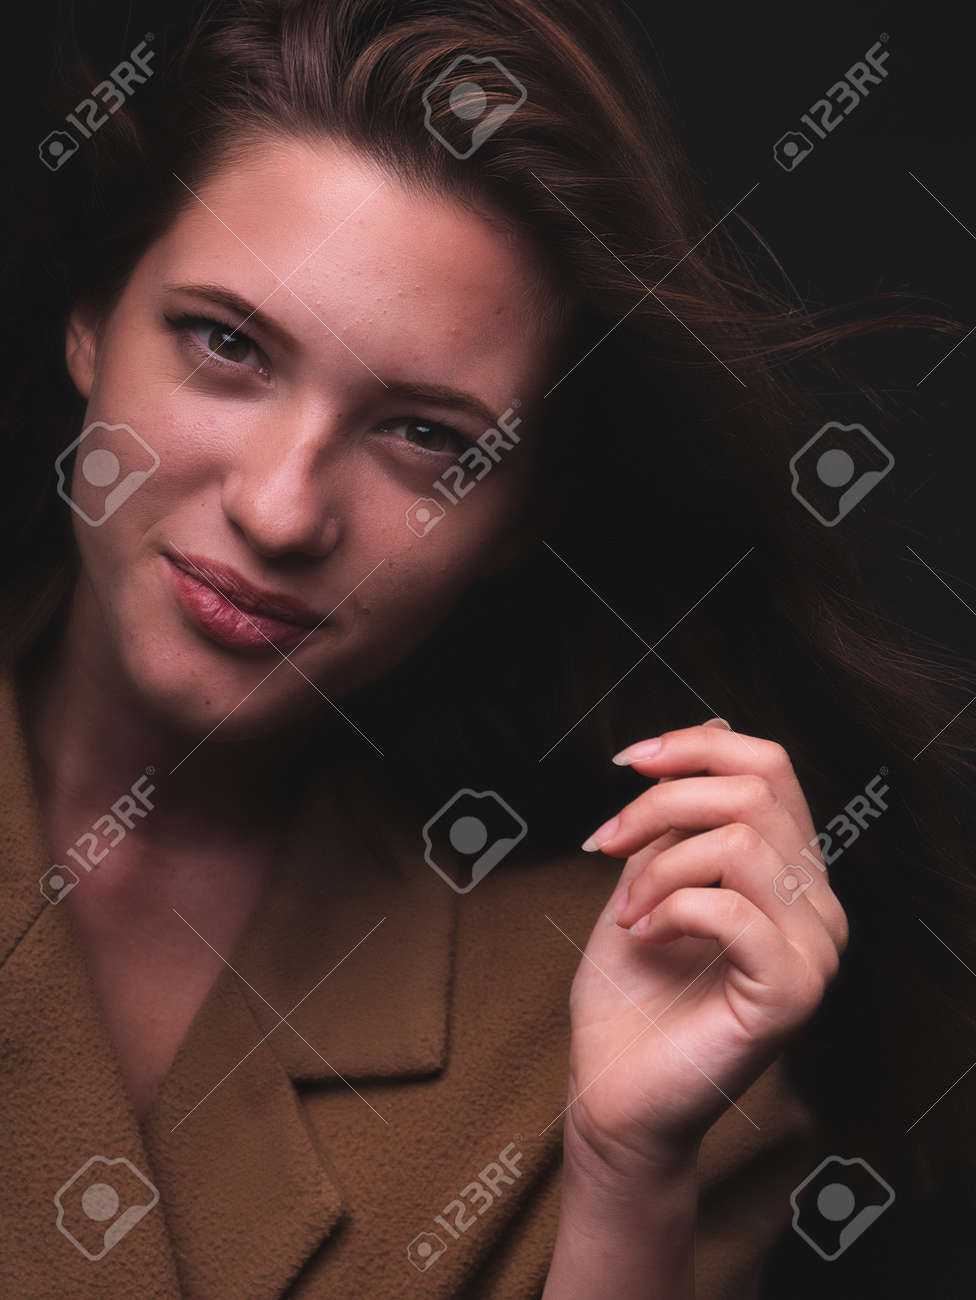 conceptual portrait, one young beautiful woman wraped in plastic sheet. Shot in studio, white background. - 164118952